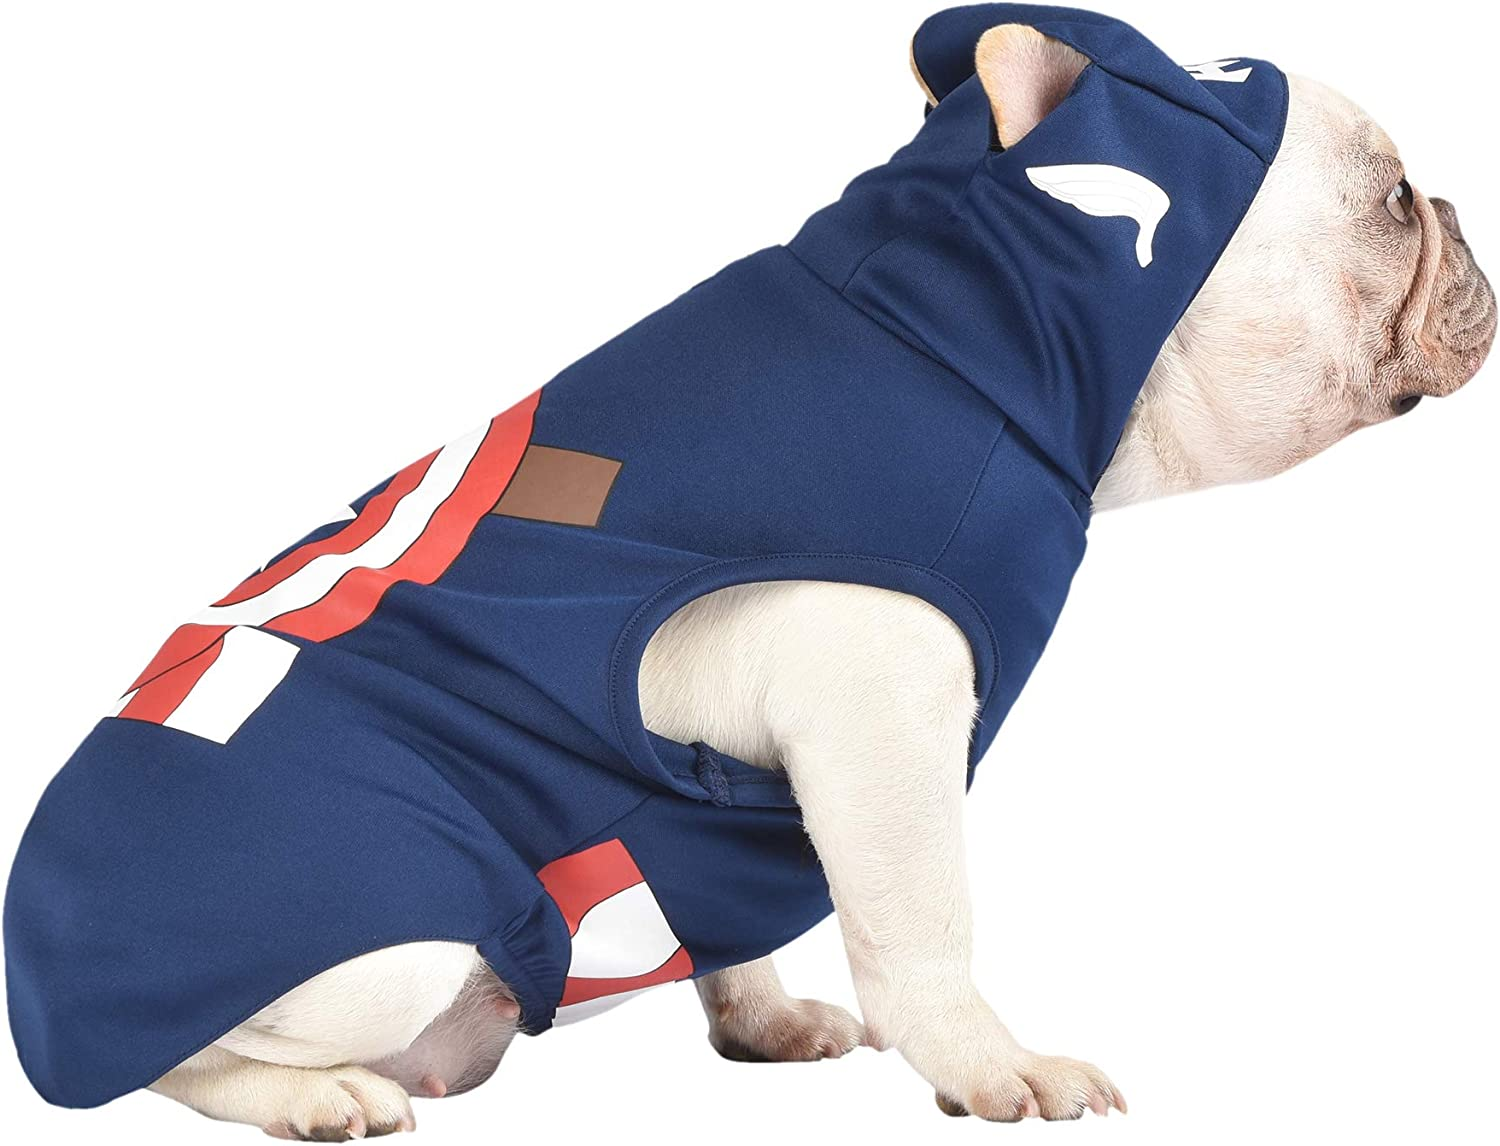 Marvel Legends Captain America Hooded Dog Costume From captain america and spiderman to hulk and wolverine, we have what you're looking for. marvel legends captain america hooded